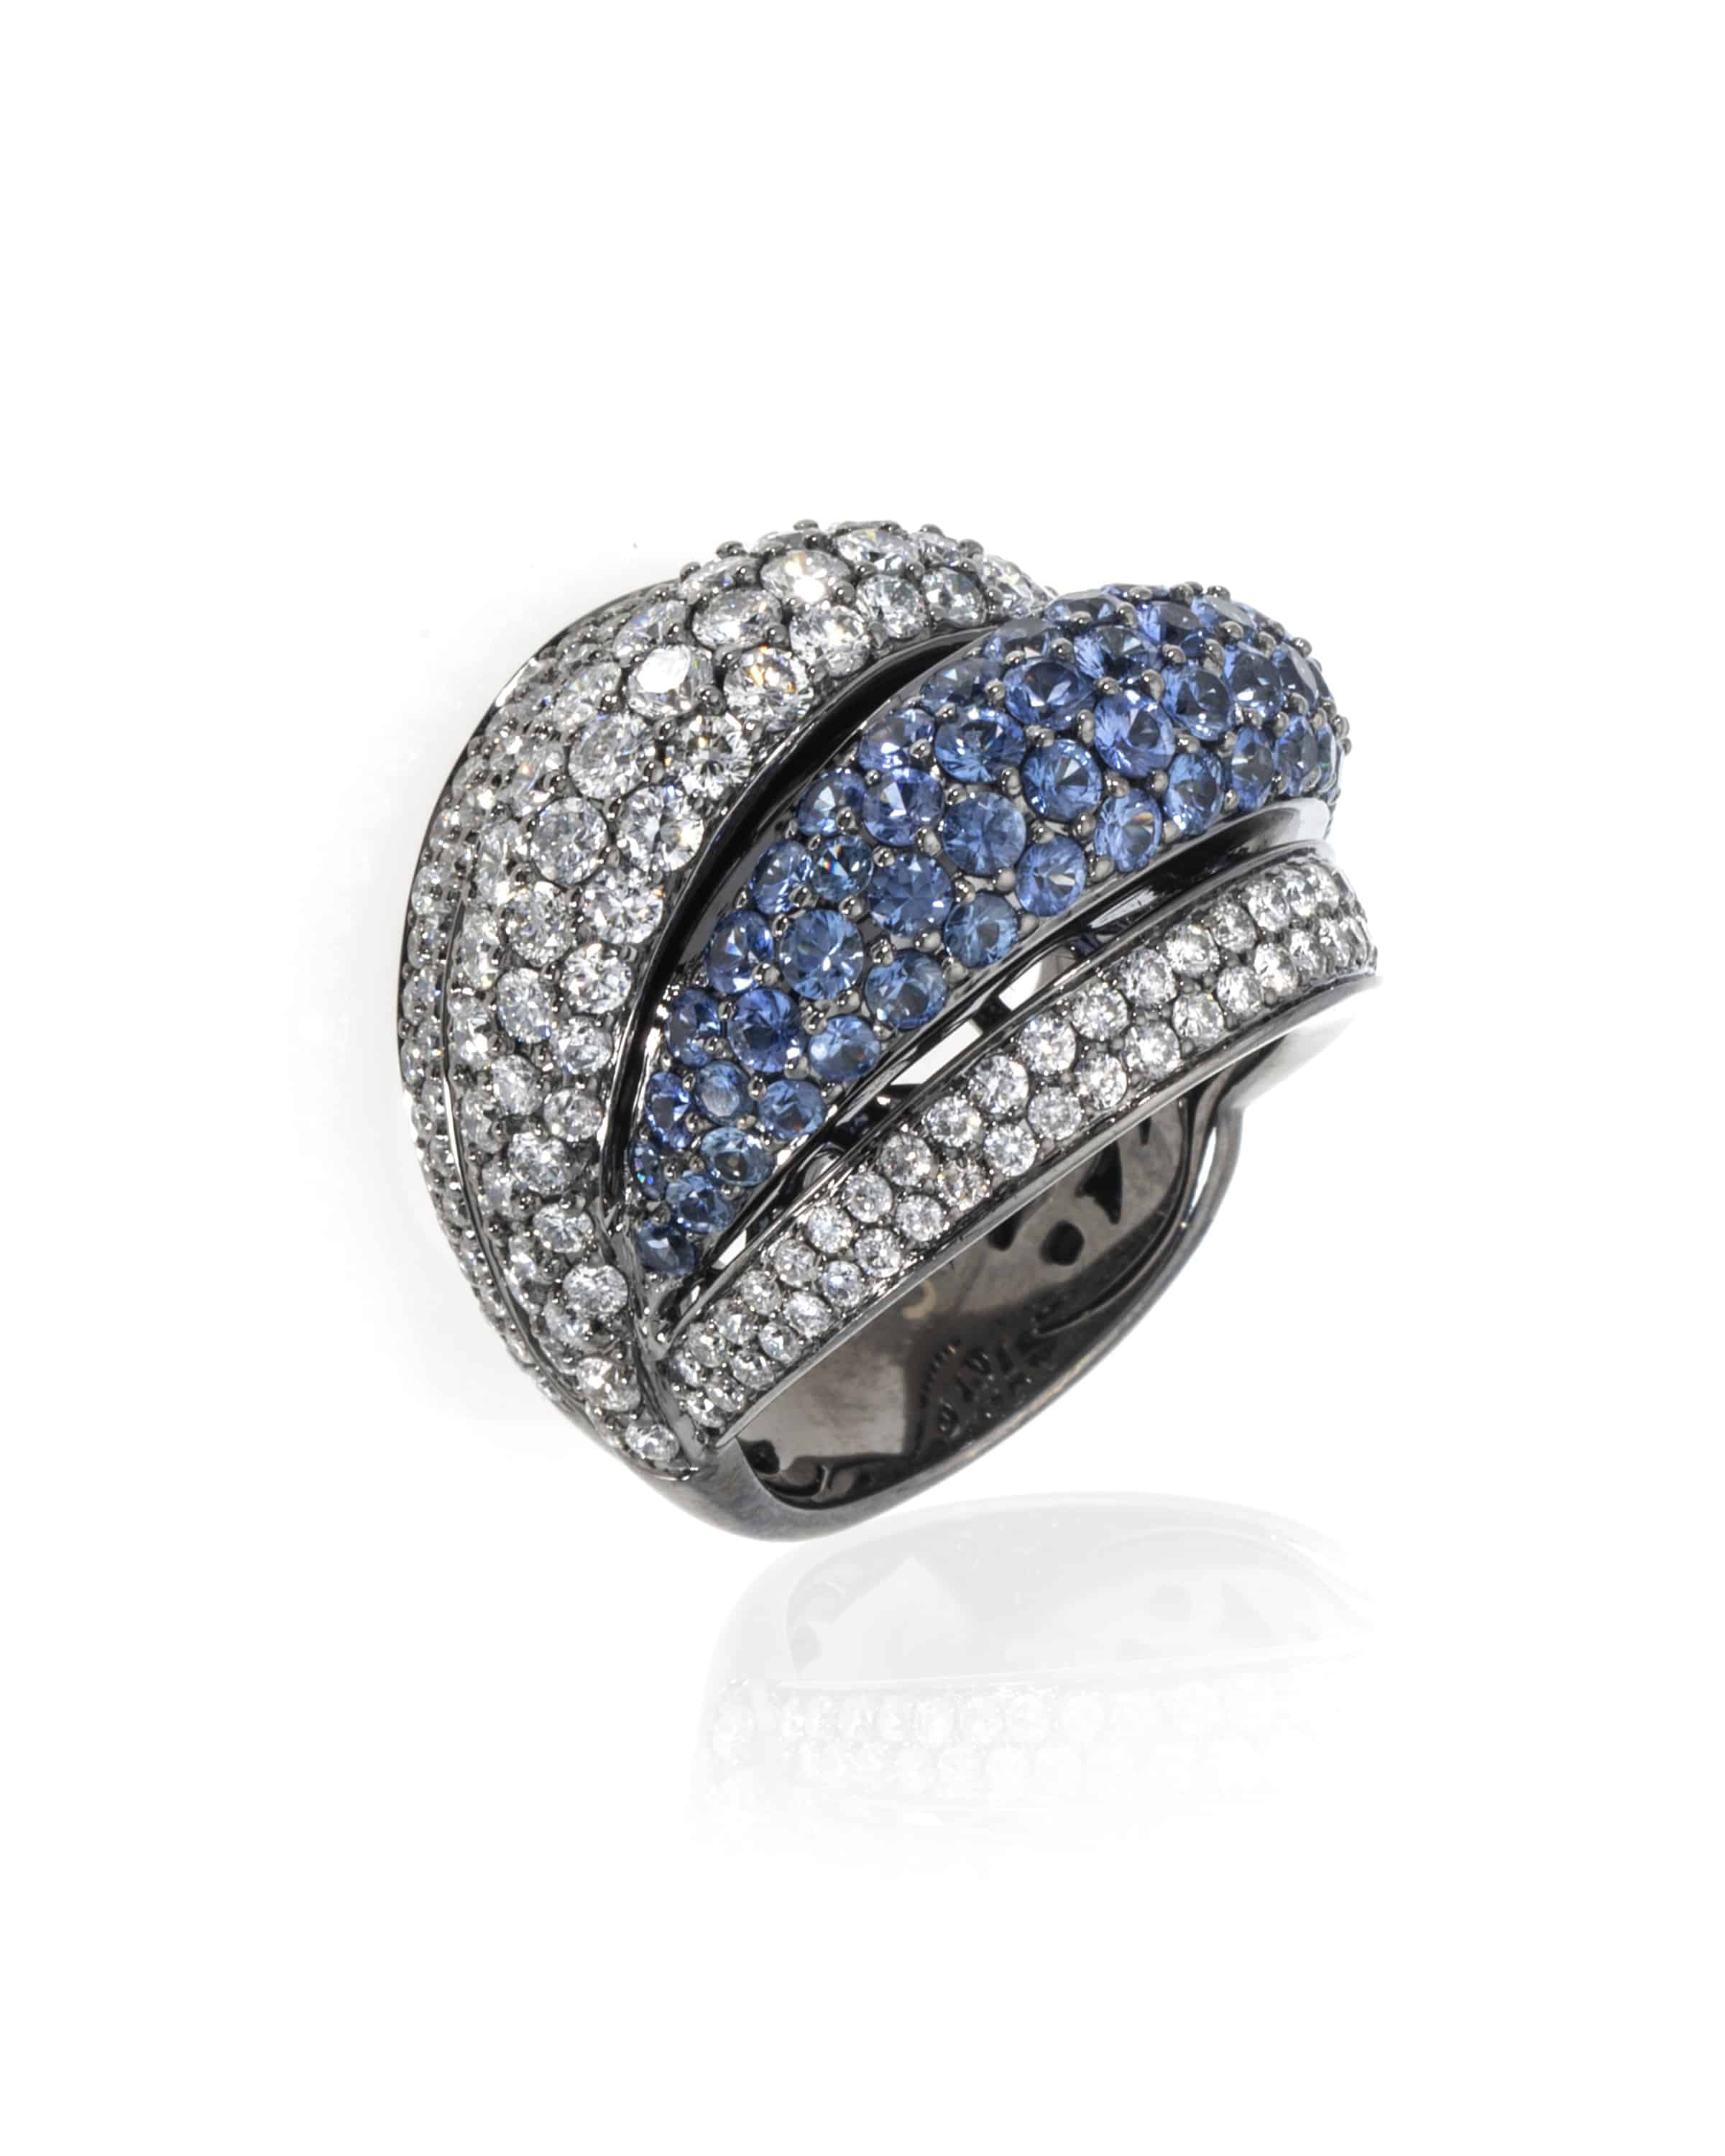 Crivelli 18k White Gold Diamond And Sapphire Ring Size 7. 035-R22009-28417605